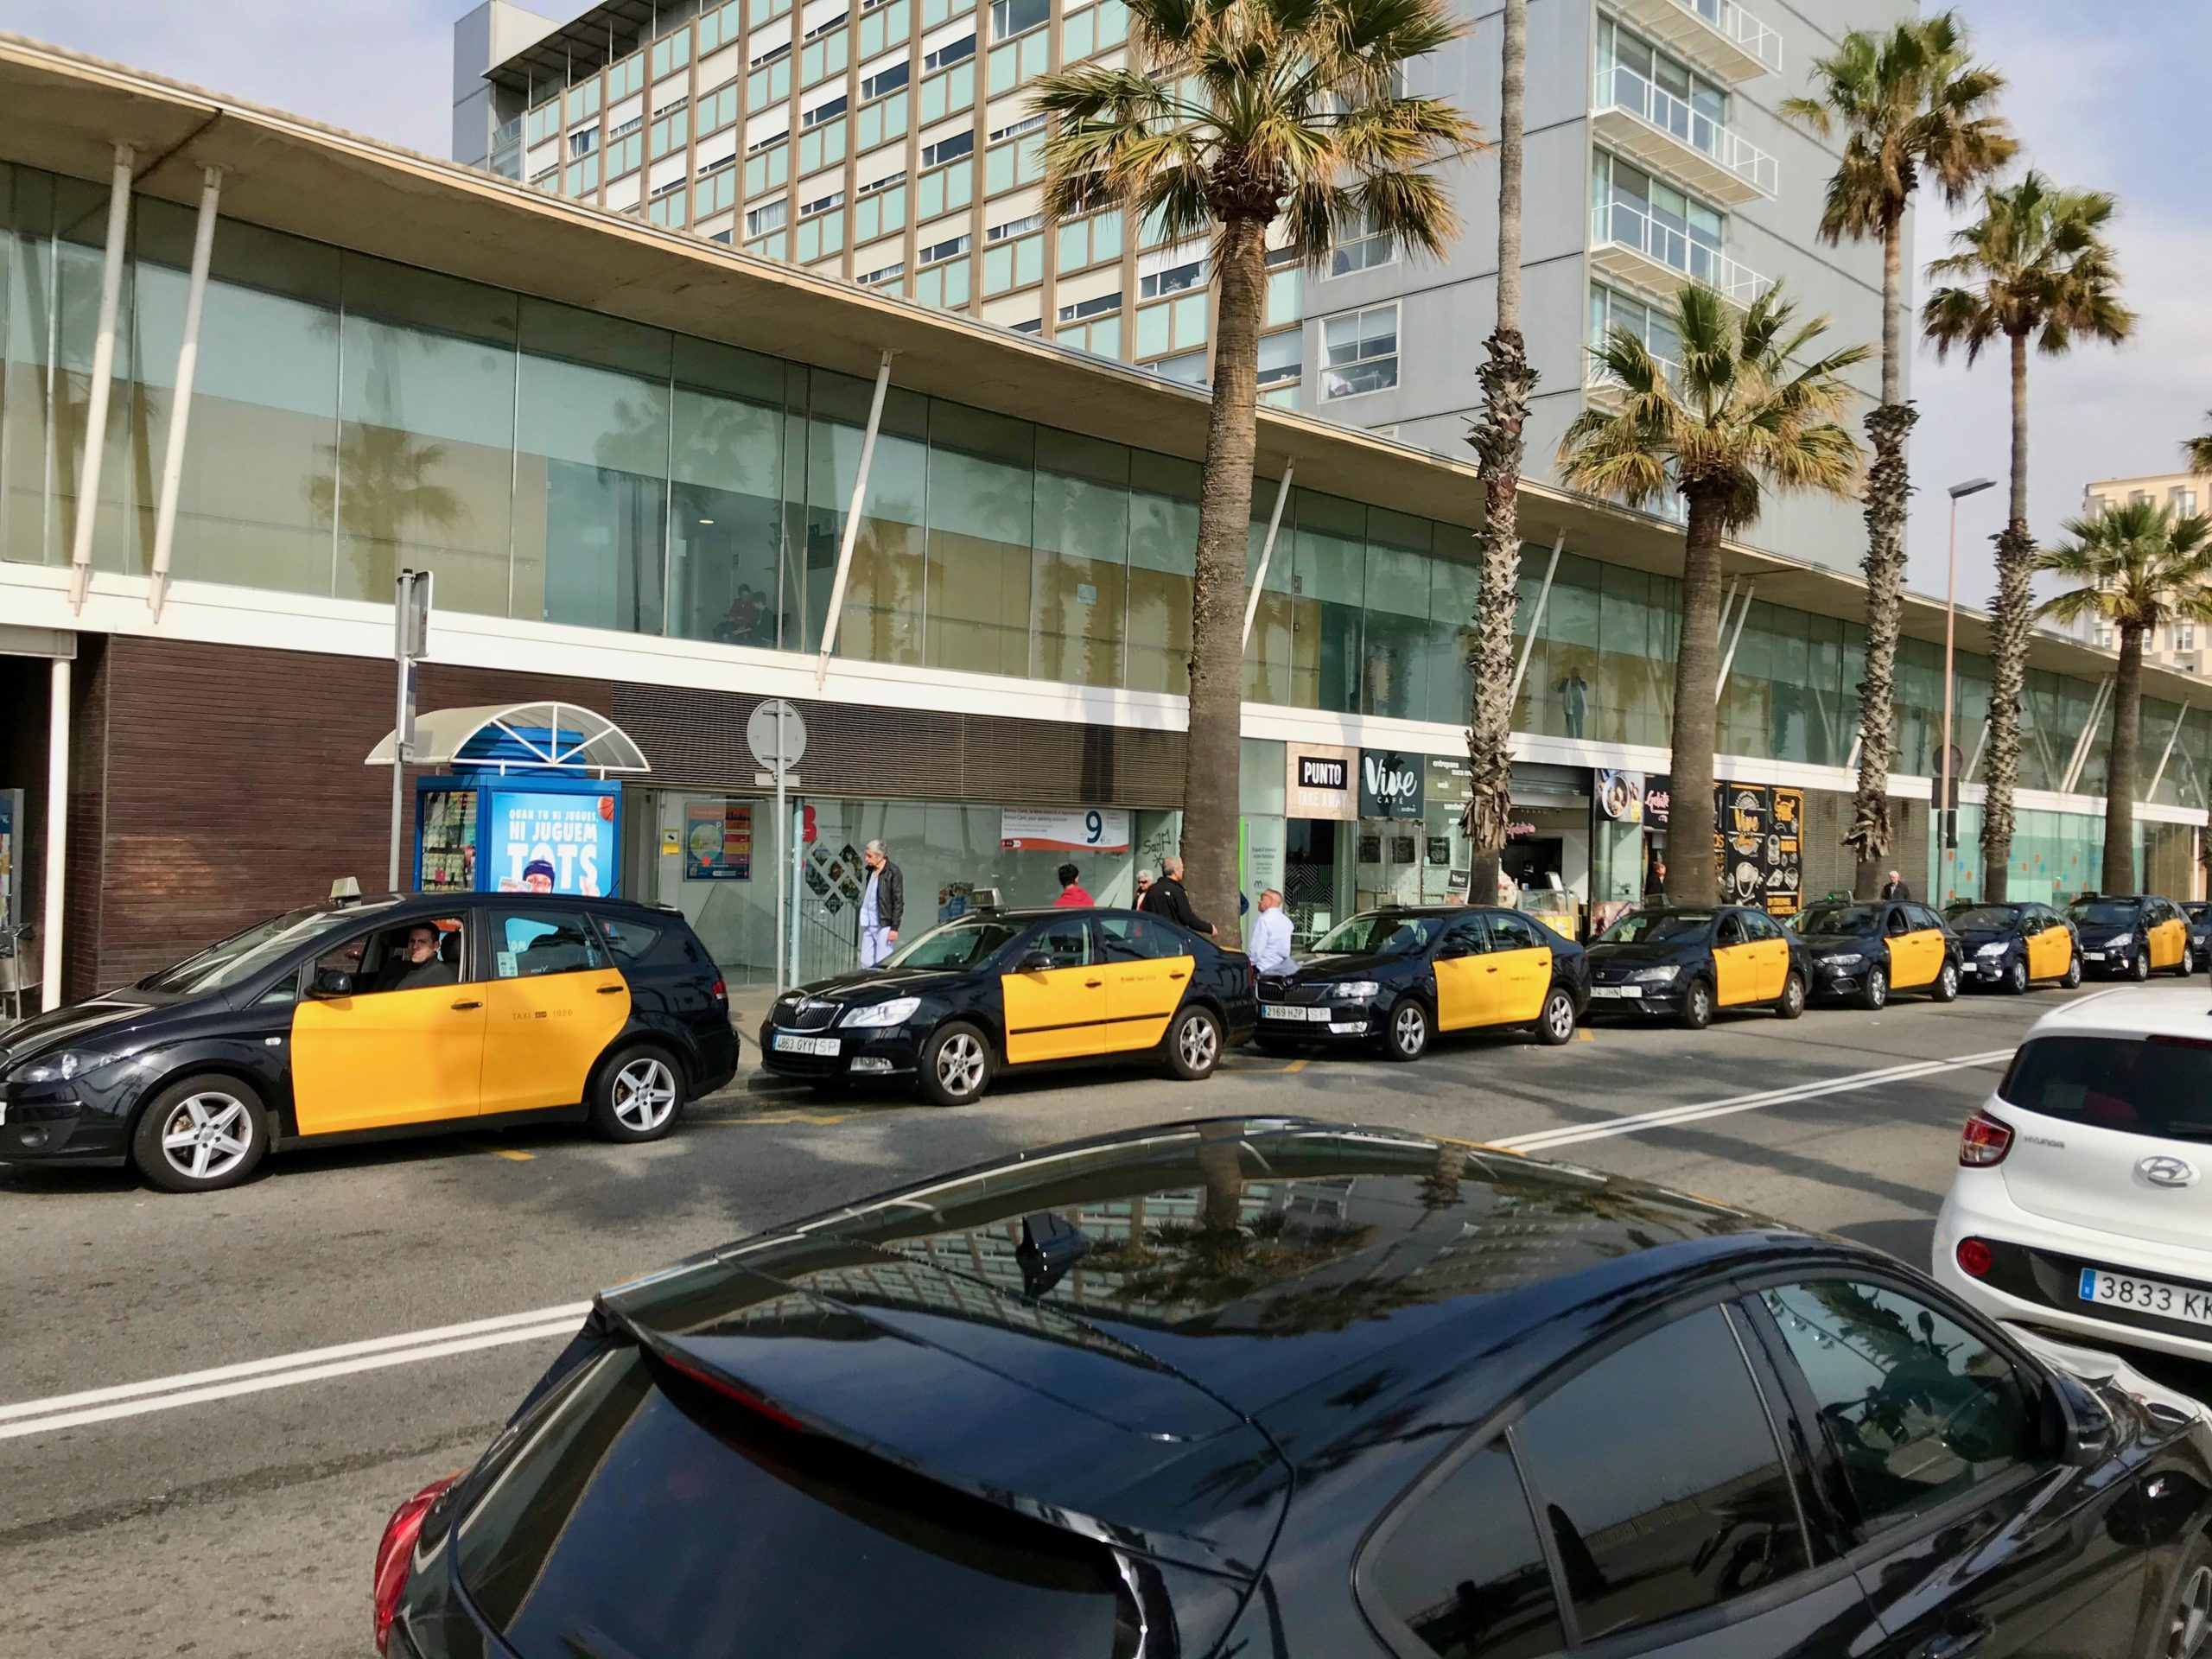 La parada de taxis en un dels primers dies de confinament a l'Hospital del Mar | A.G